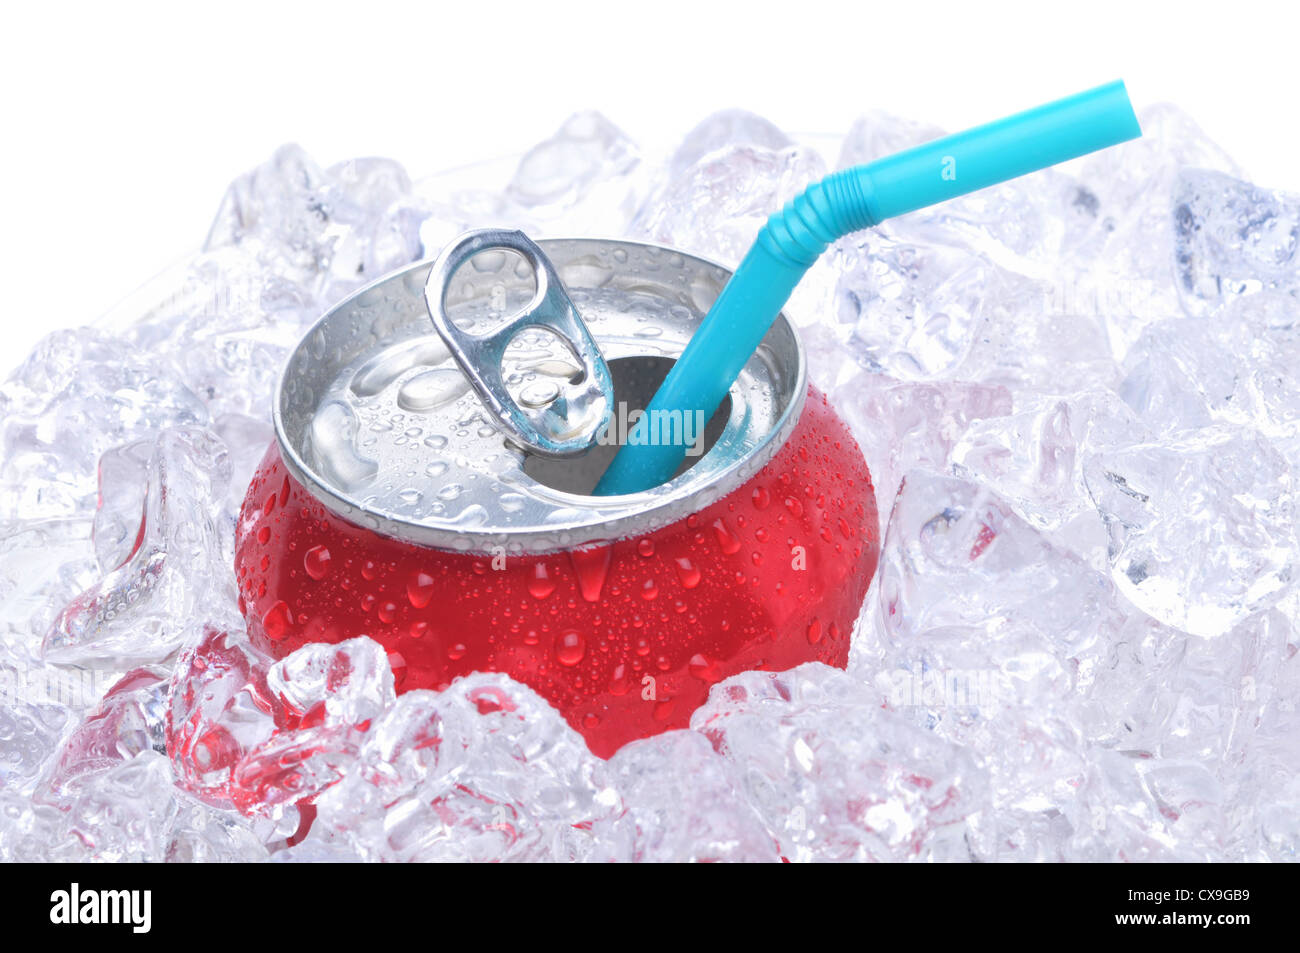 Single soda can in ice with drinking straw white background copy space - Stock Image